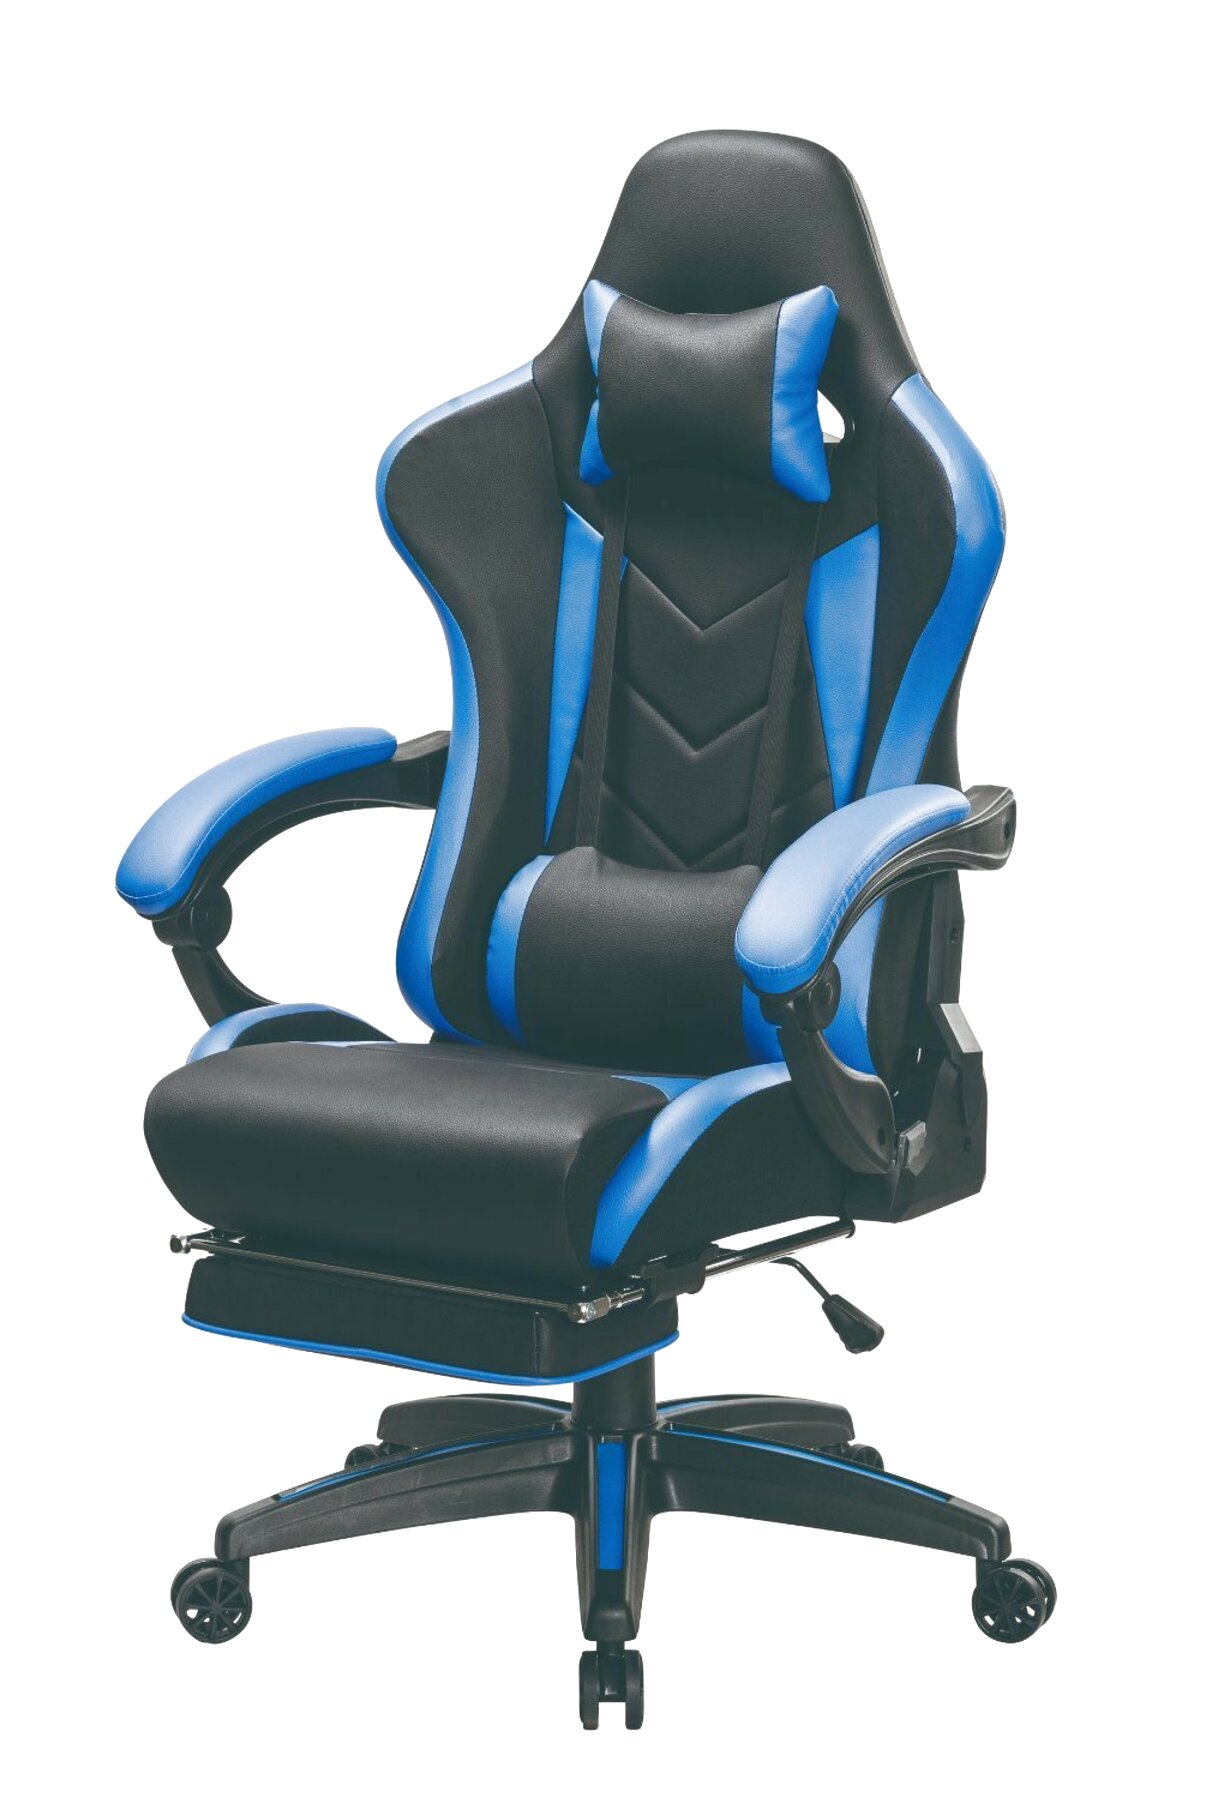 Picture of: Second Hand Xbox Gaming Chair In Ireland View 40 Ads